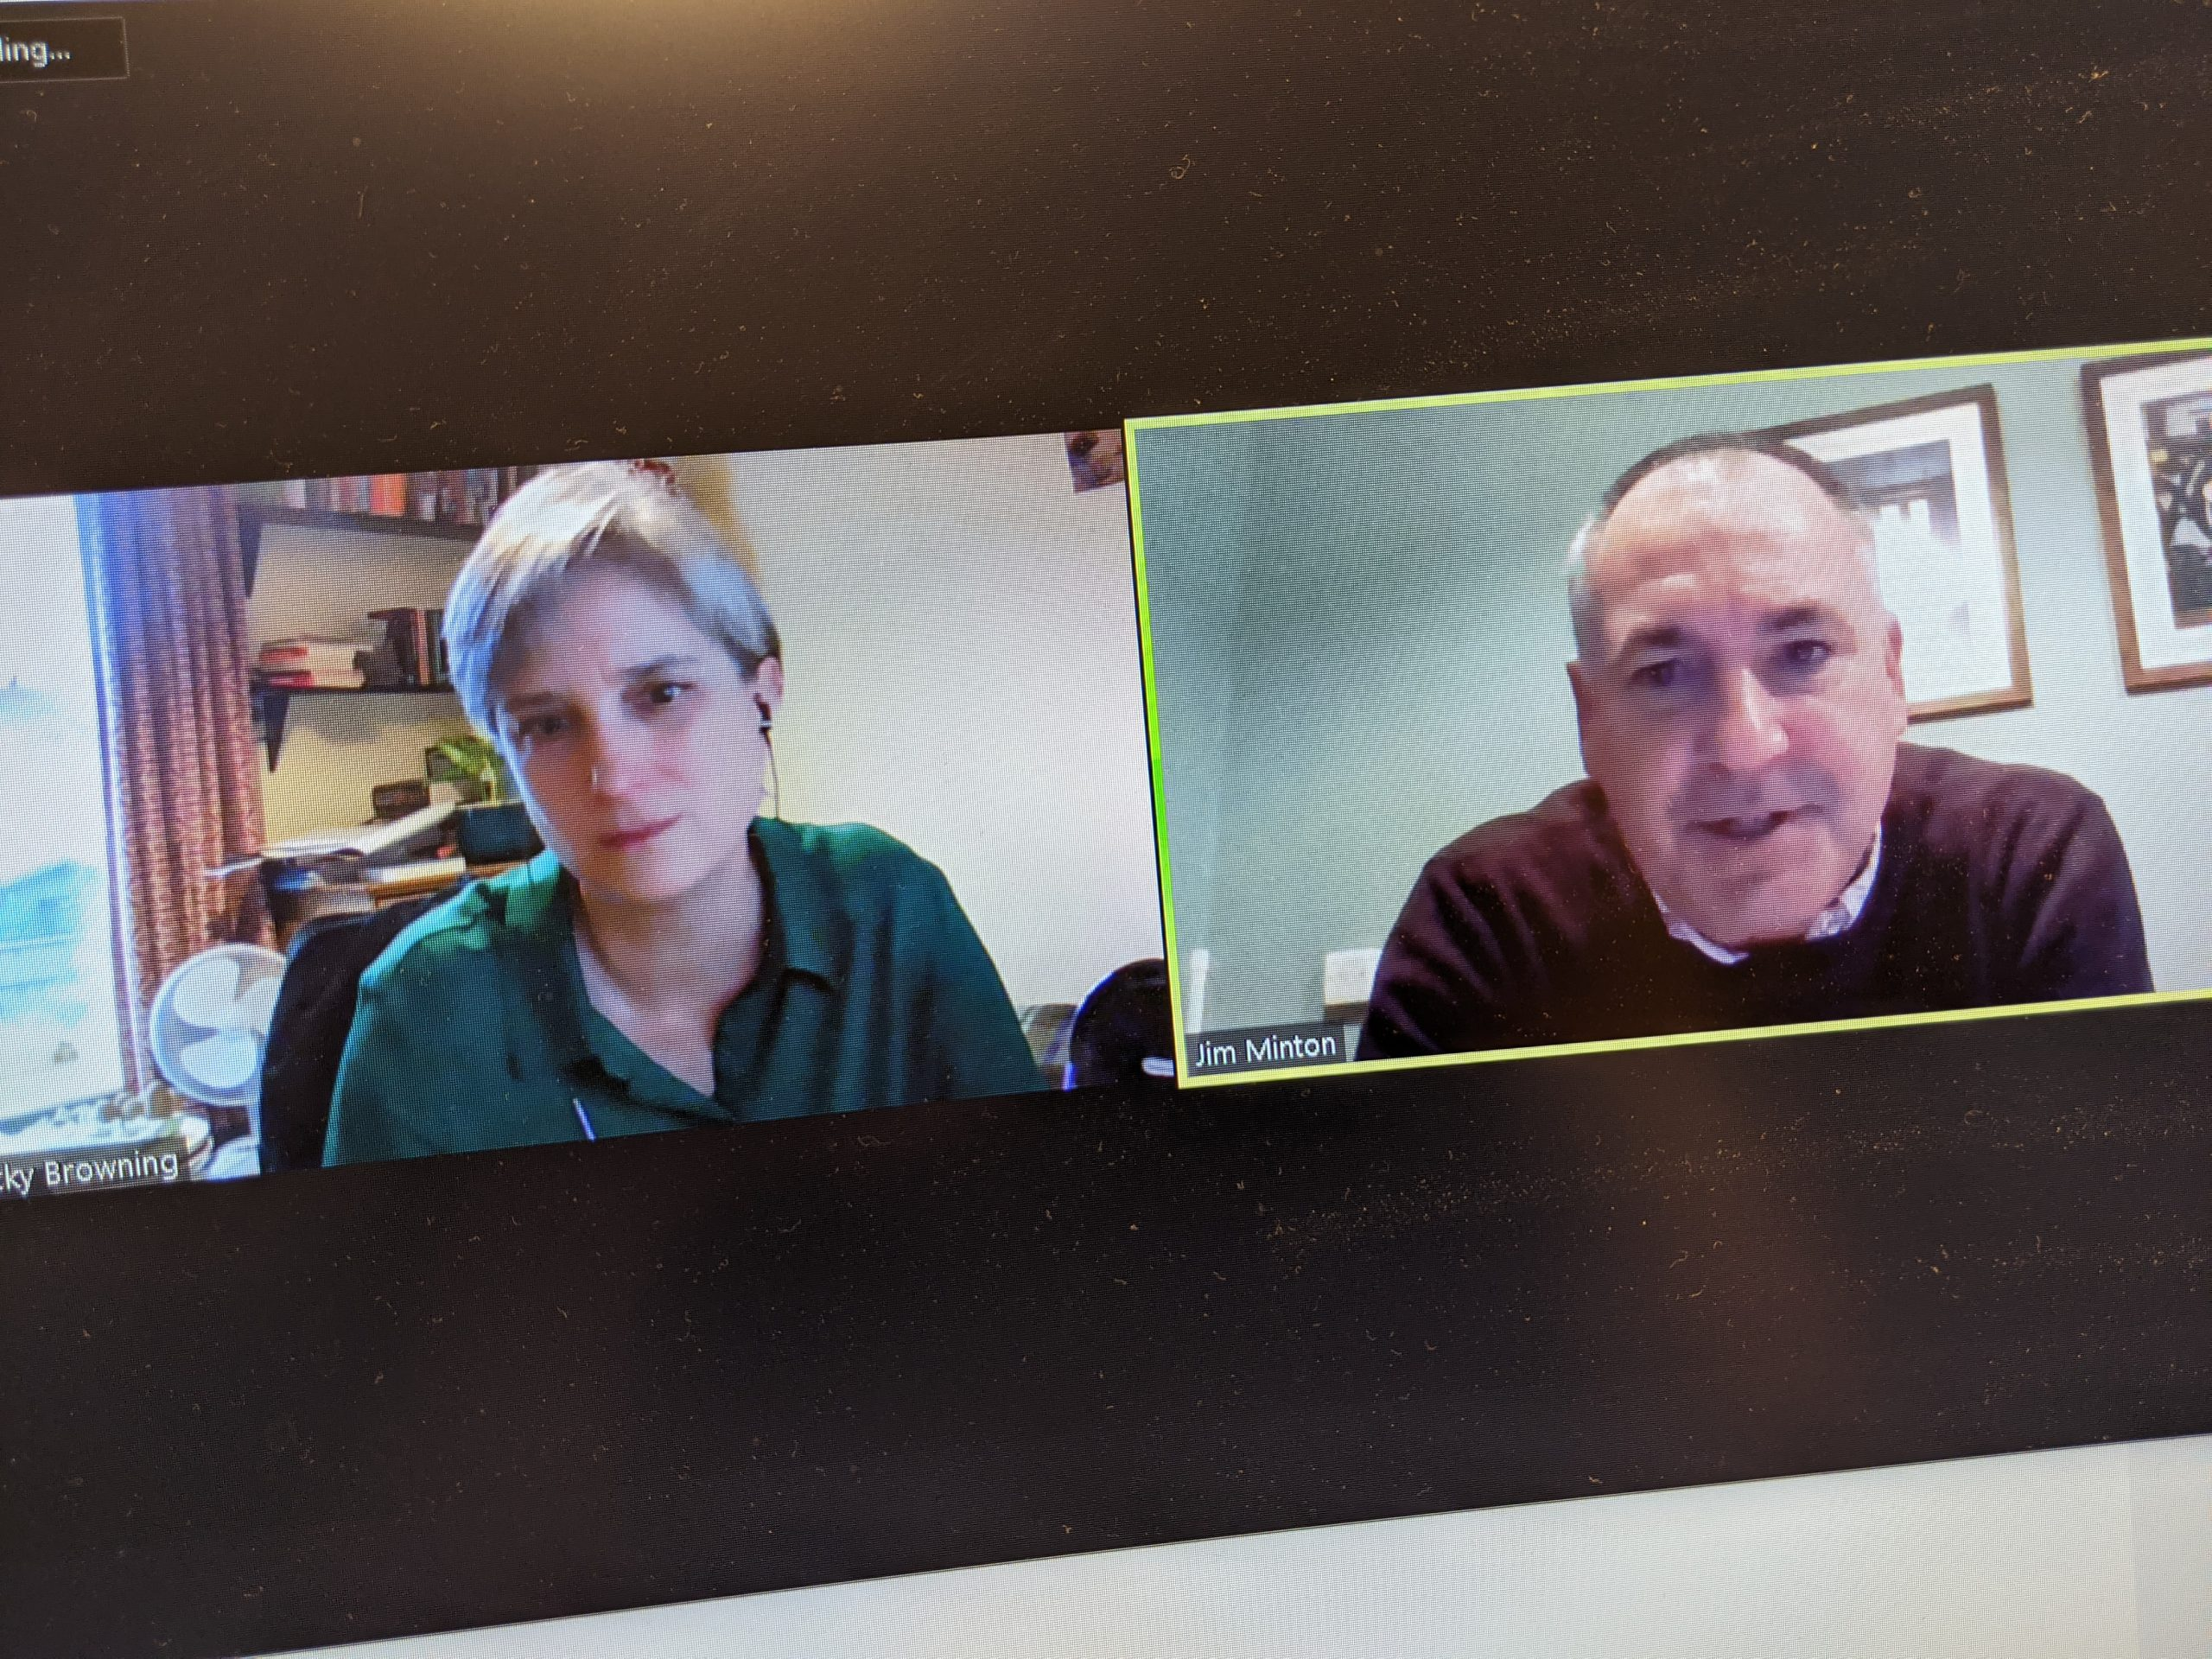 Screenshot of a Zoom call between Vicky Browning and Jim Minton